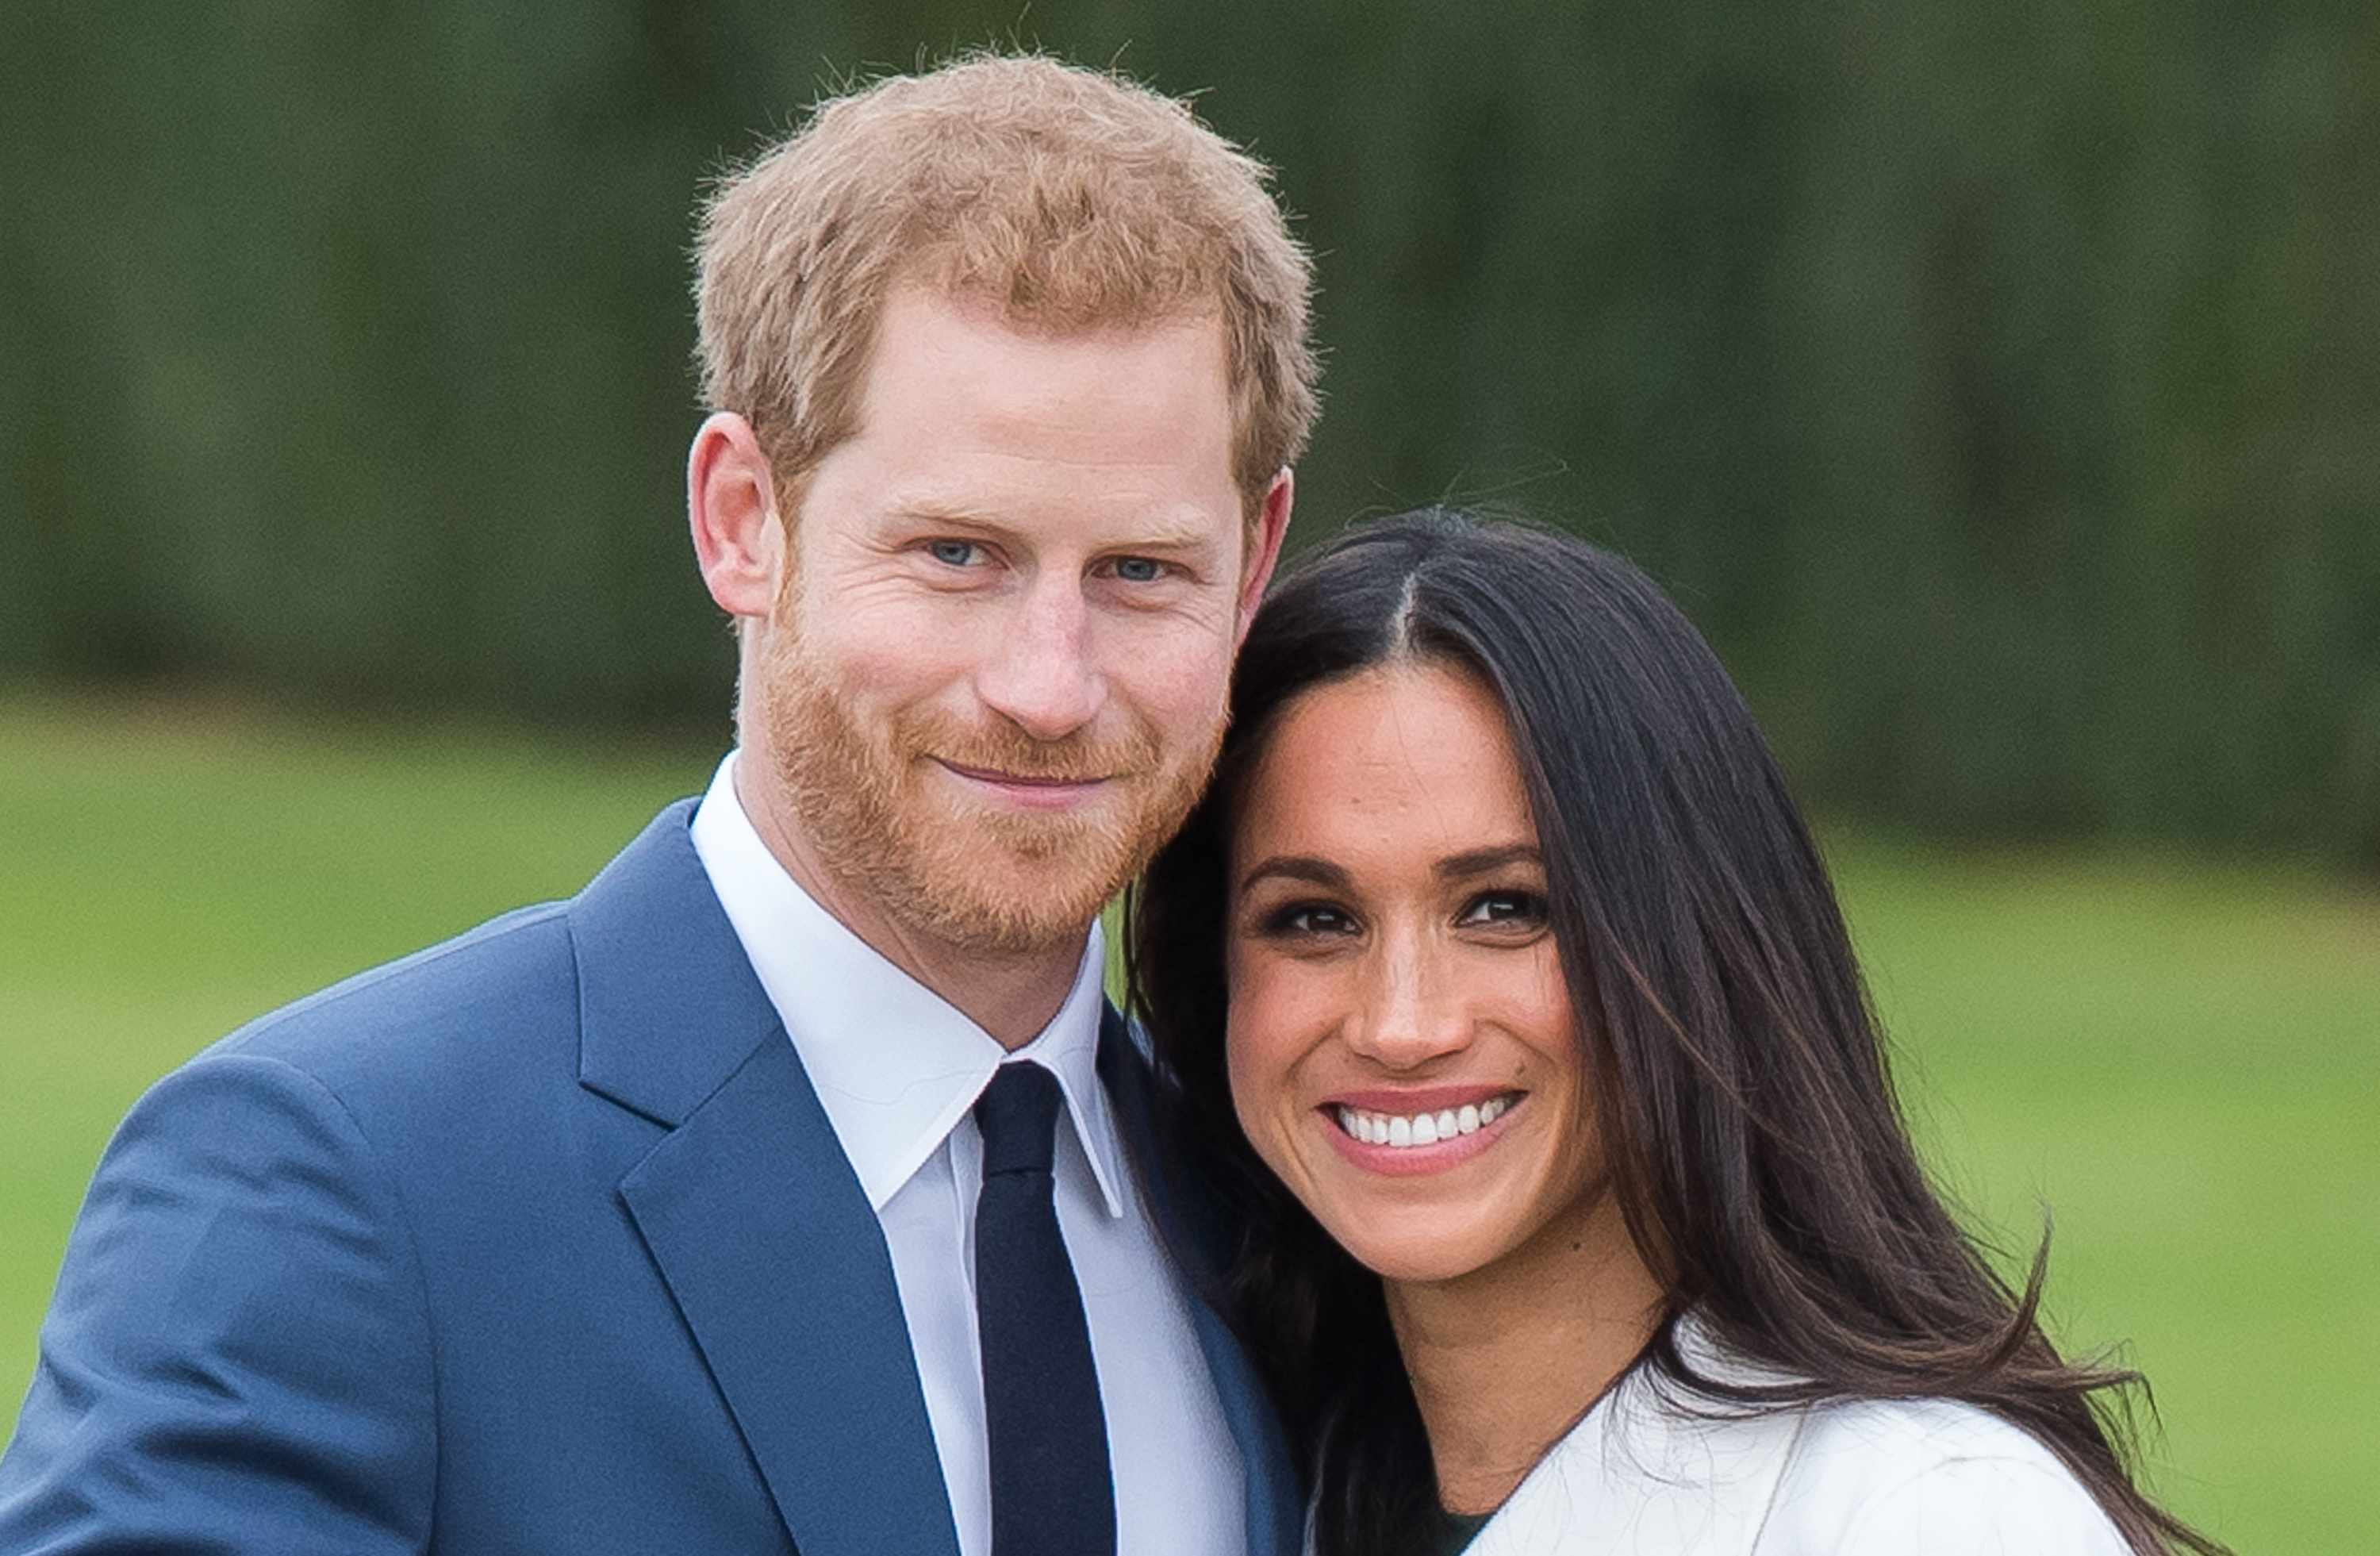 Announcement Of Prince Harry's Engagement To Meghan Markle (Getty, EH)